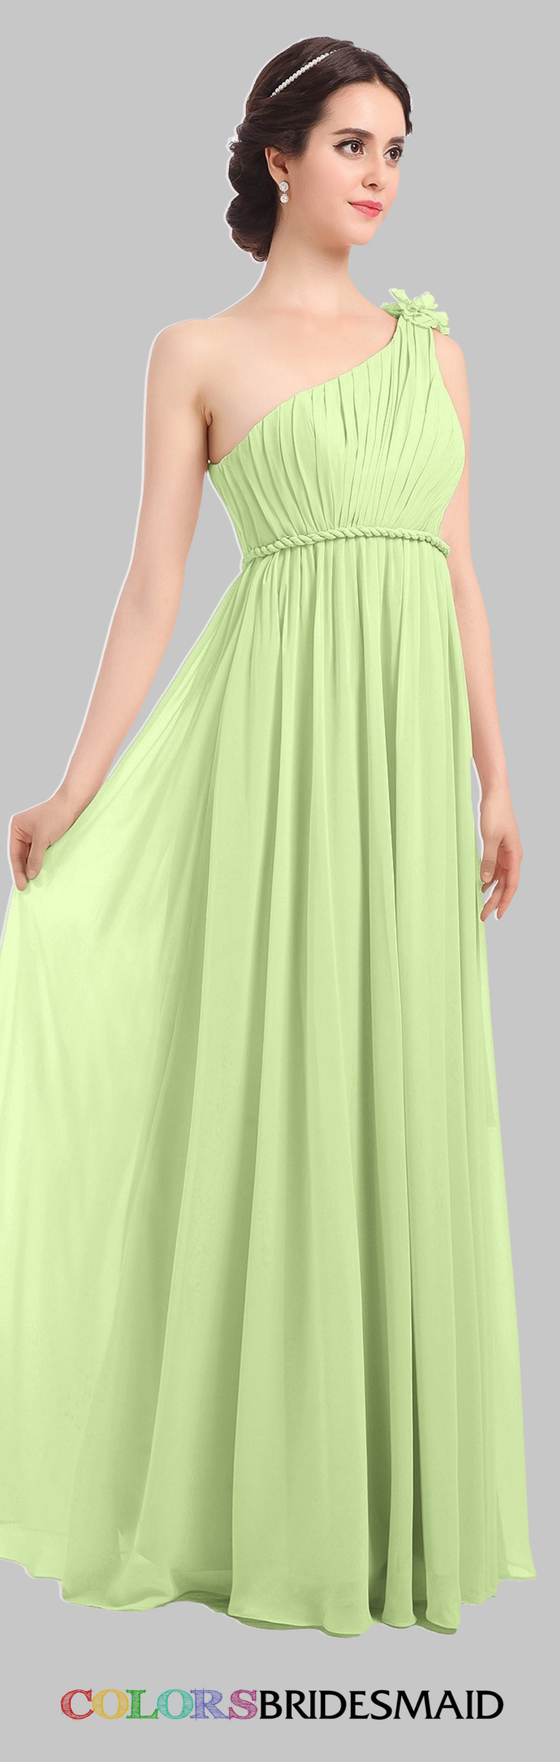 This long bridesmaid dress in butterfly a popular green color shade